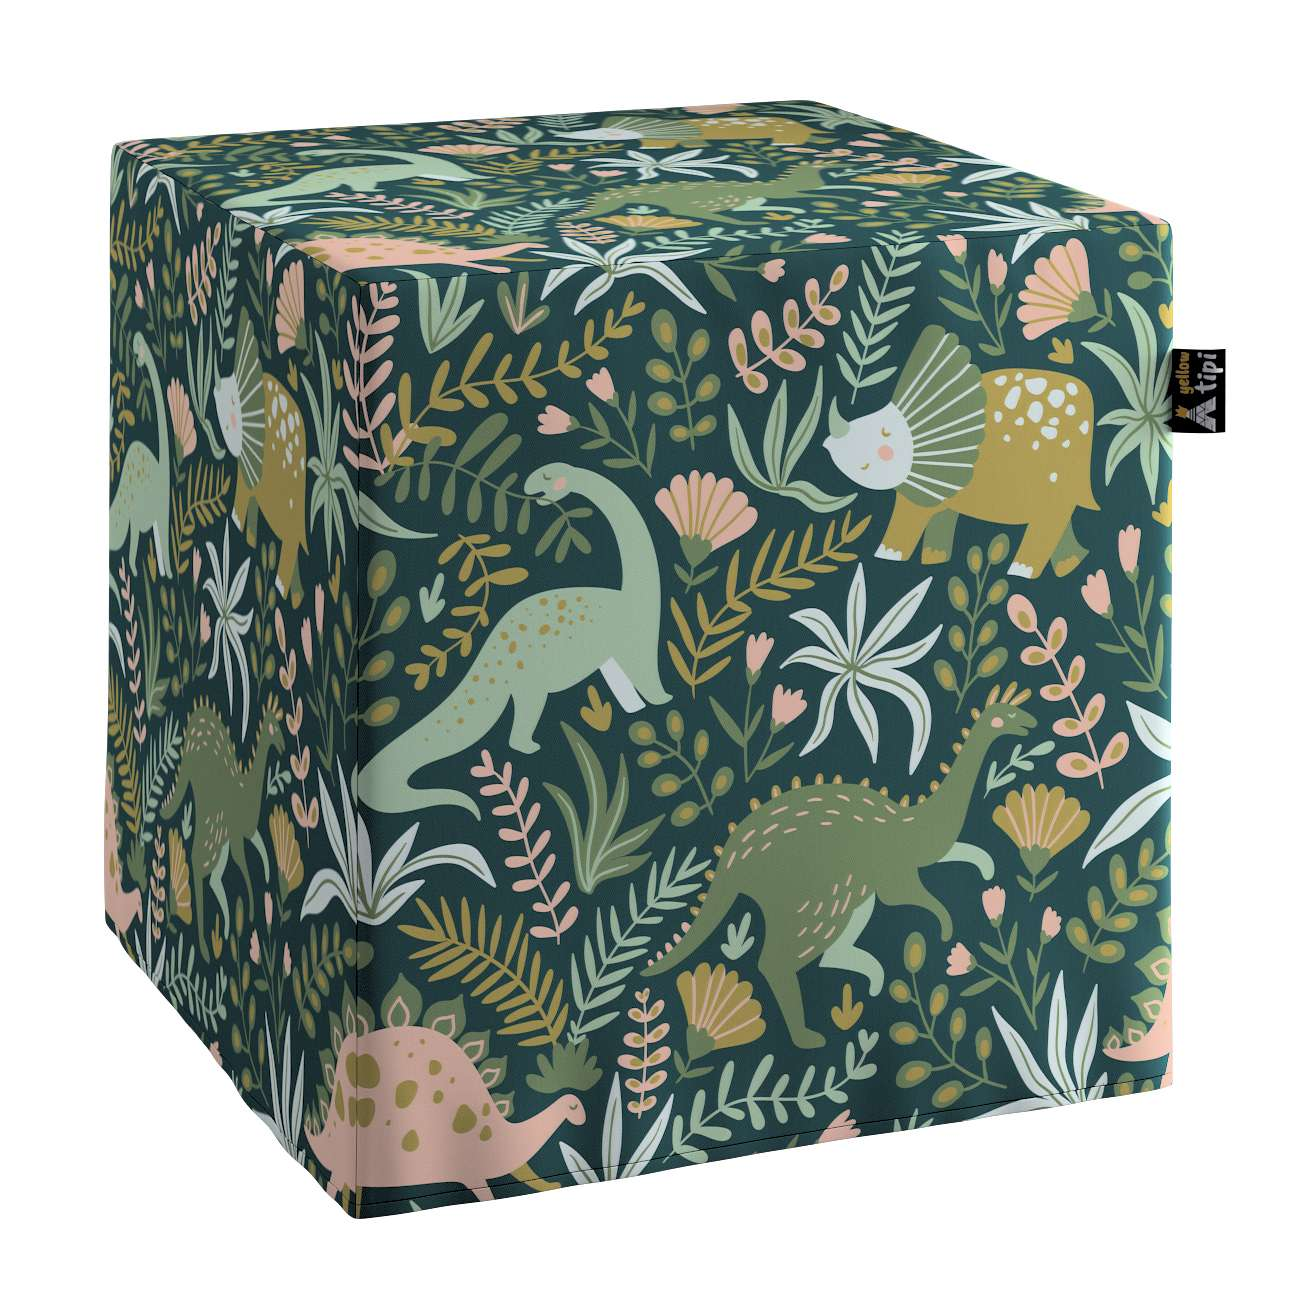 Nano cube pouf in collection Magic Collection, fabric: 500-20